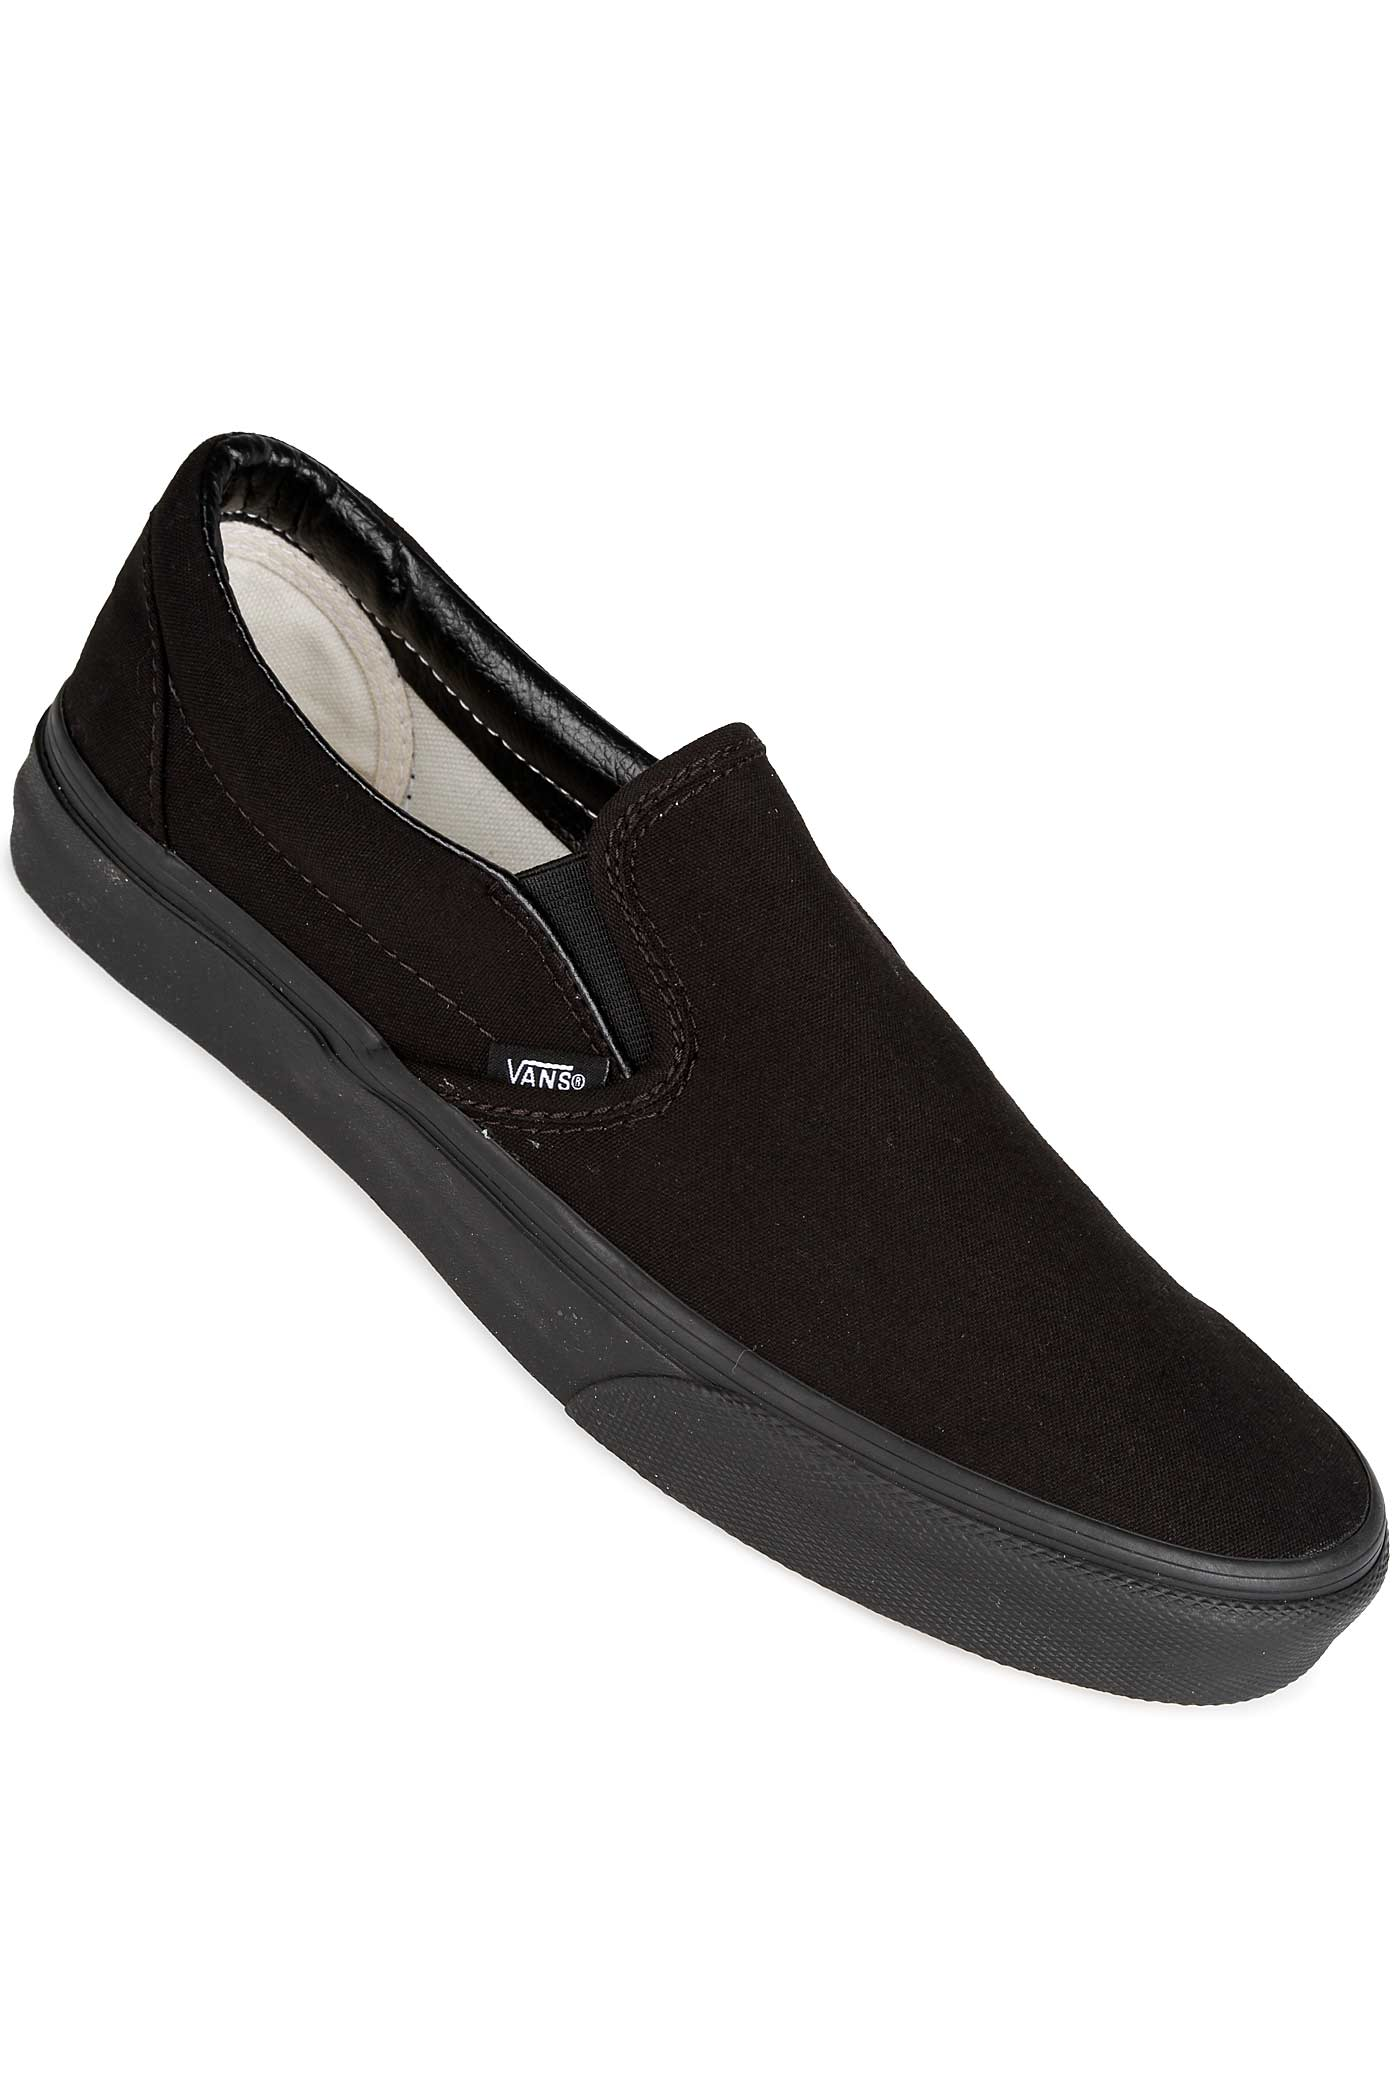 vans classic slip on chaussure black black achetez sur skatedeluxe. Black Bedroom Furniture Sets. Home Design Ideas